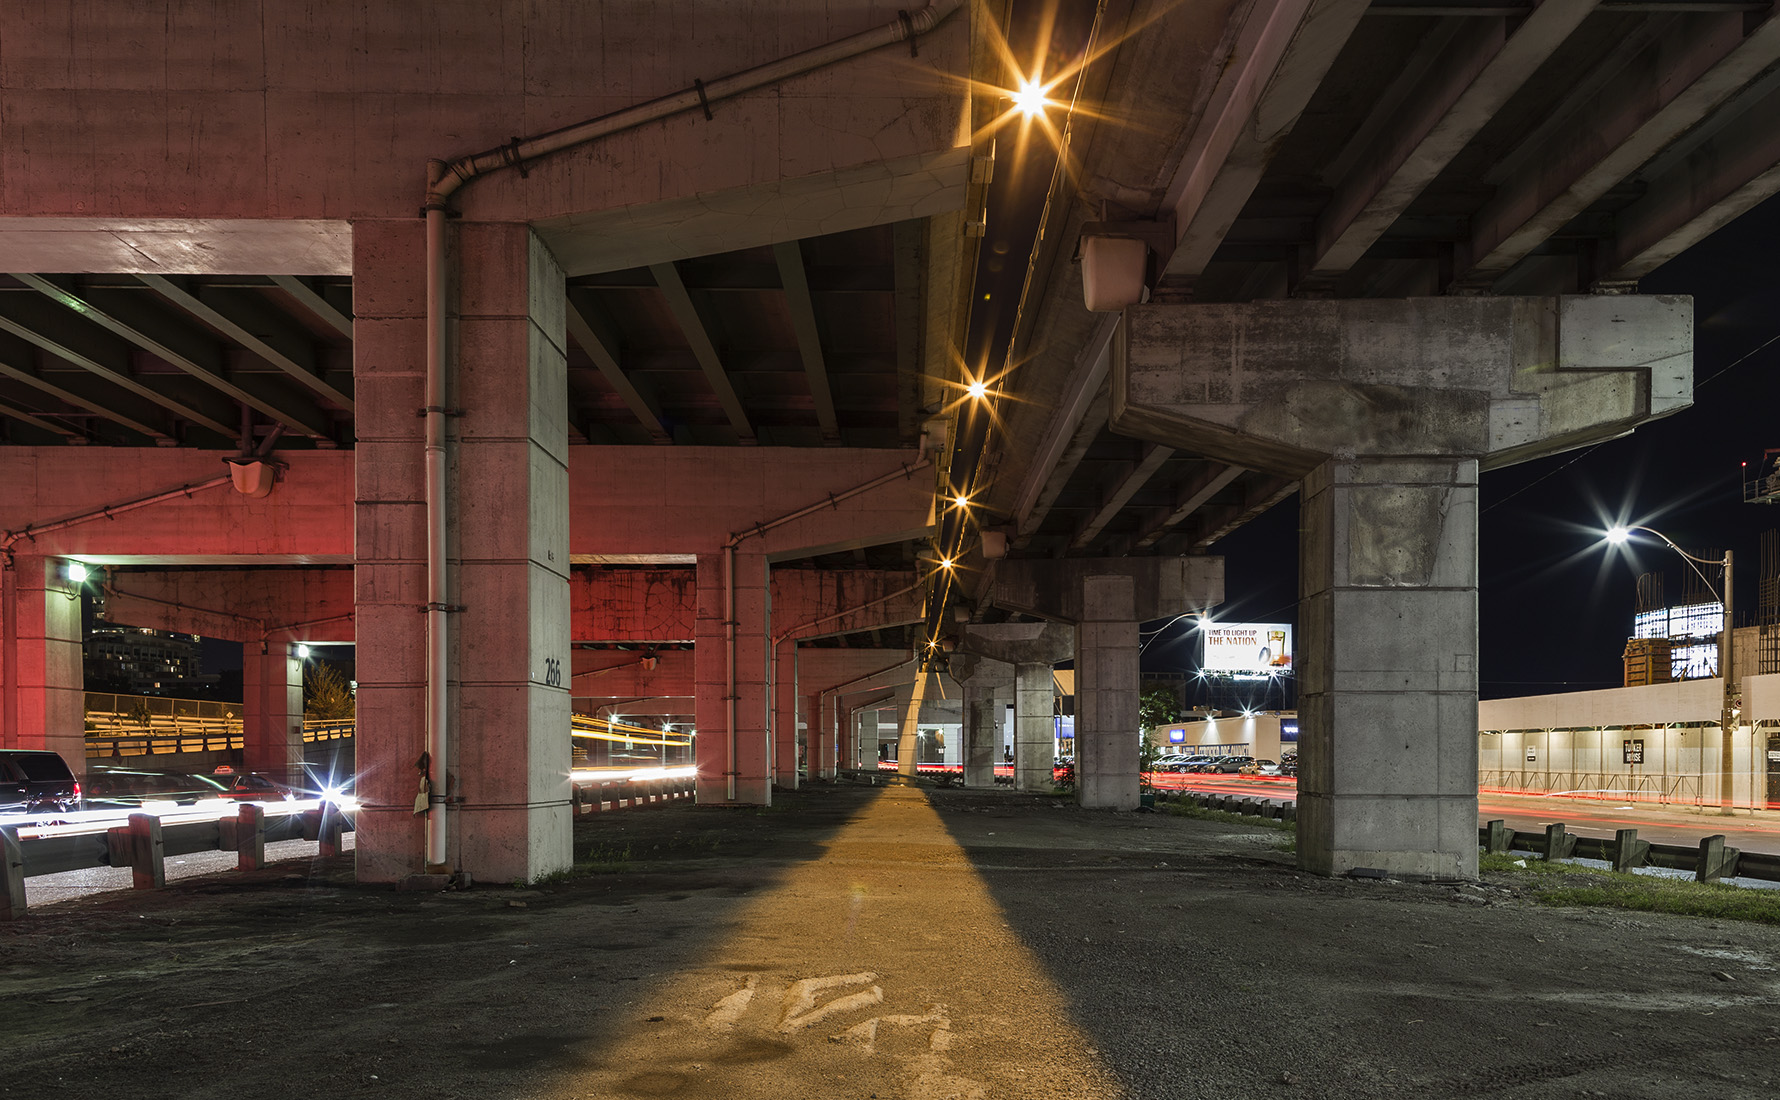 20160912. Seeking out shadows in the night under the Gardiner Ex